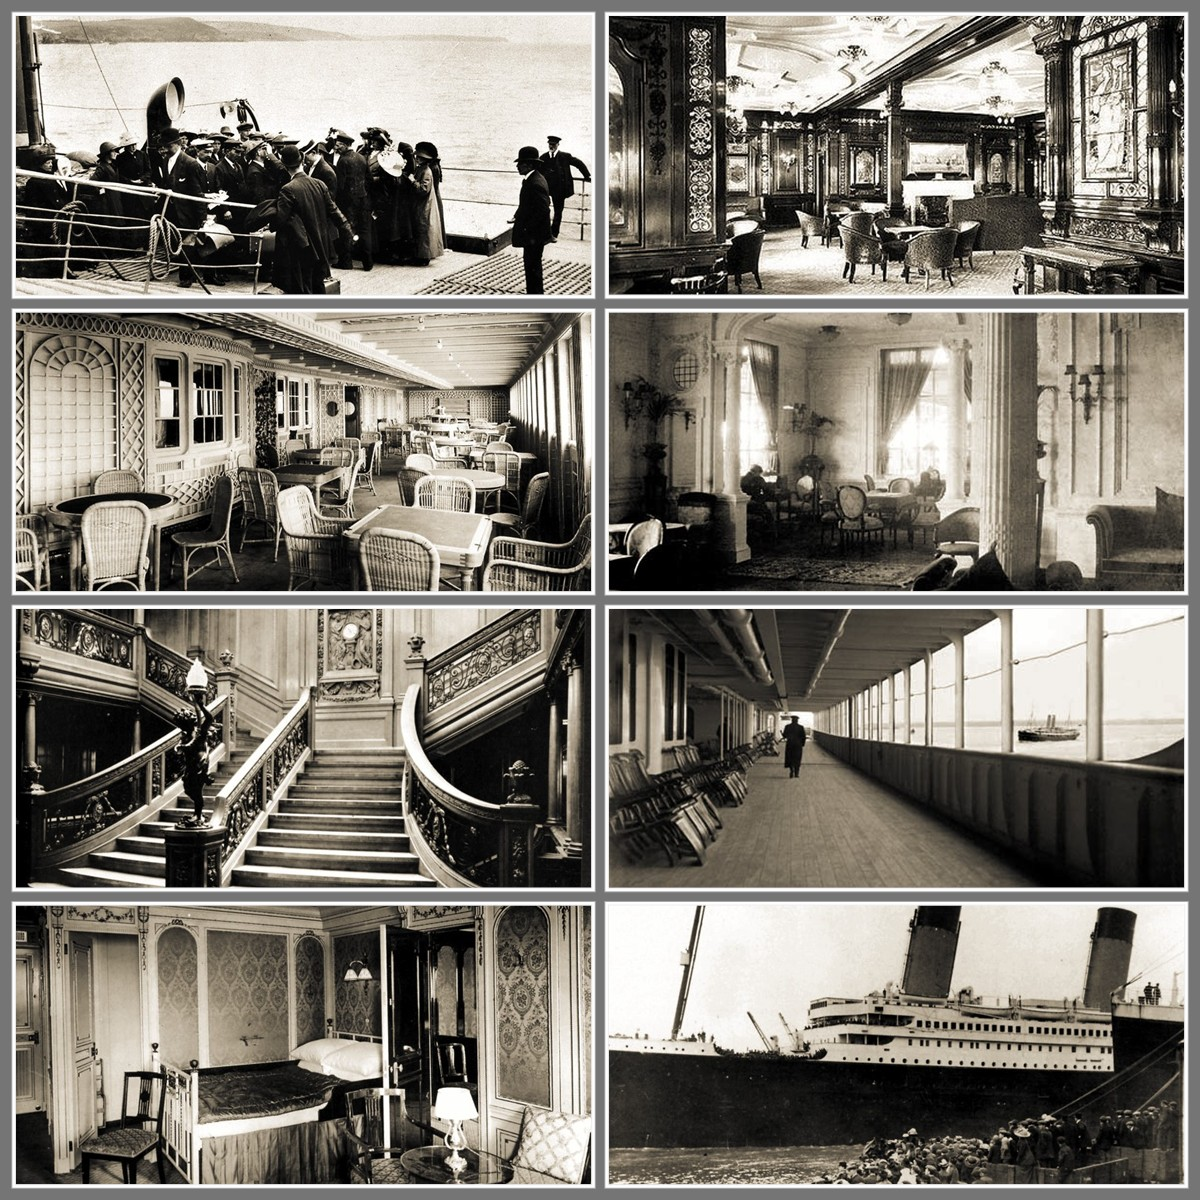 Inside Titanic 2: Recollections Of A Vagabonde: Reading About RMS Titanic